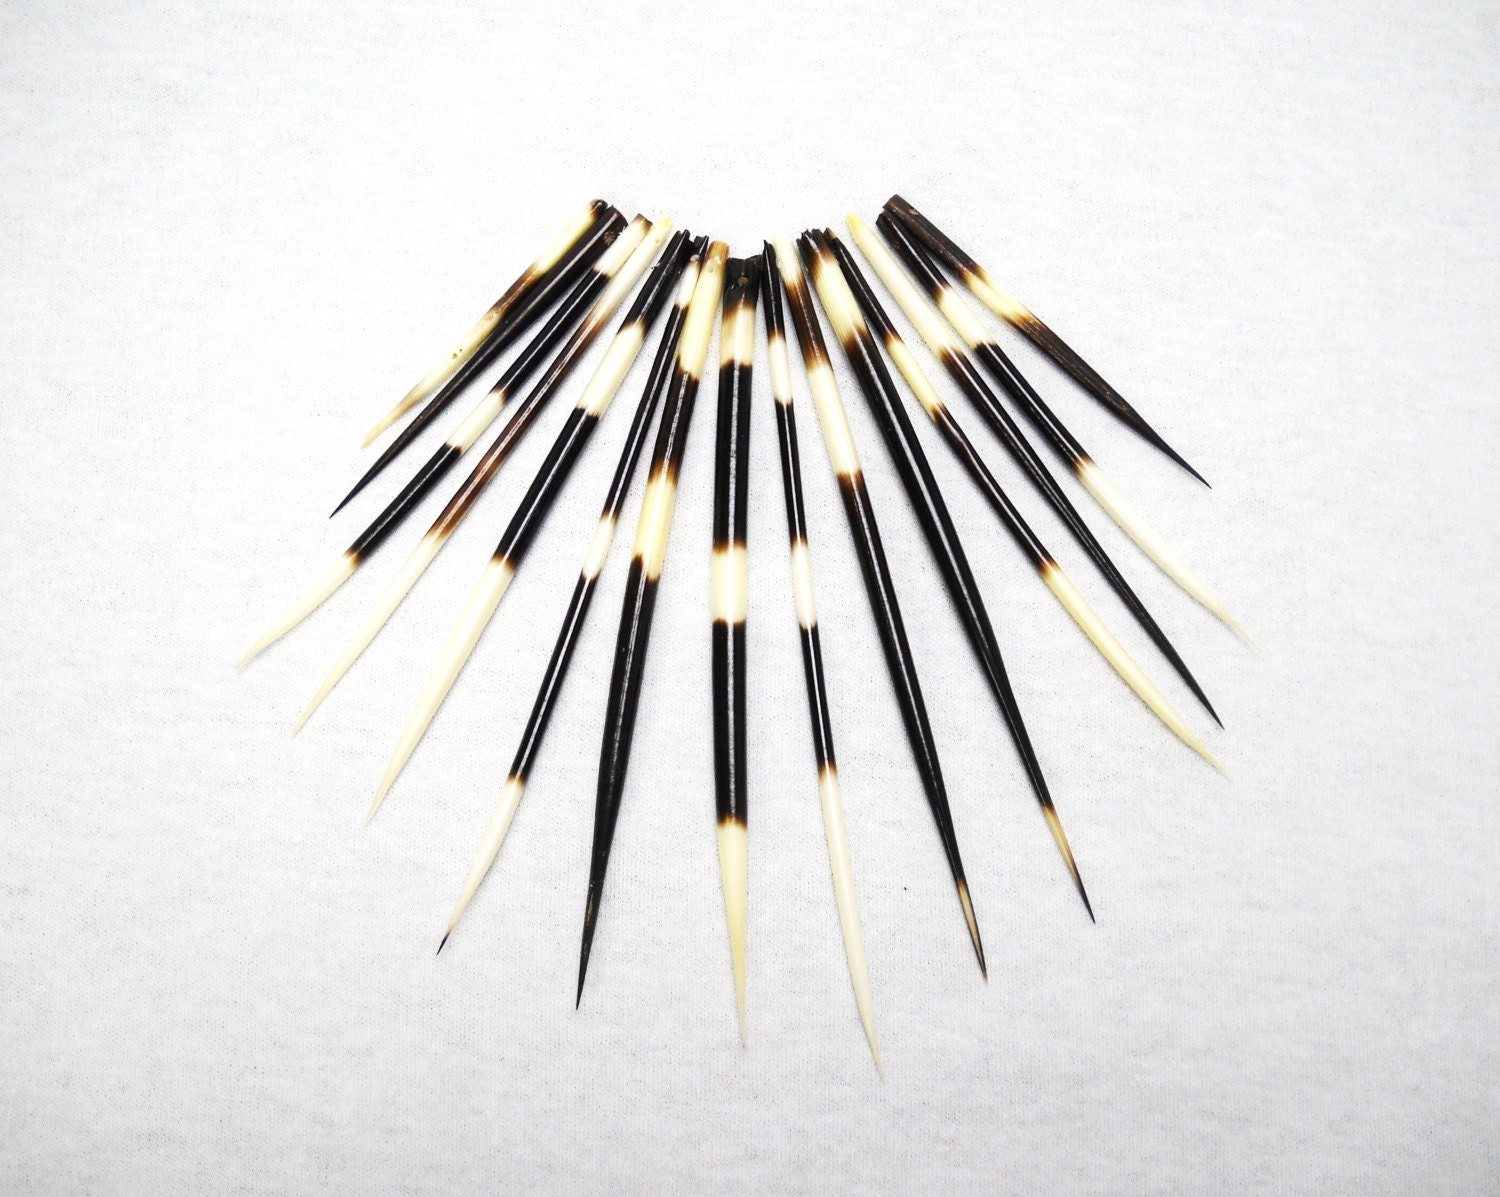 Multipack 26 DRILLED CUT Porcupine Quills Needles